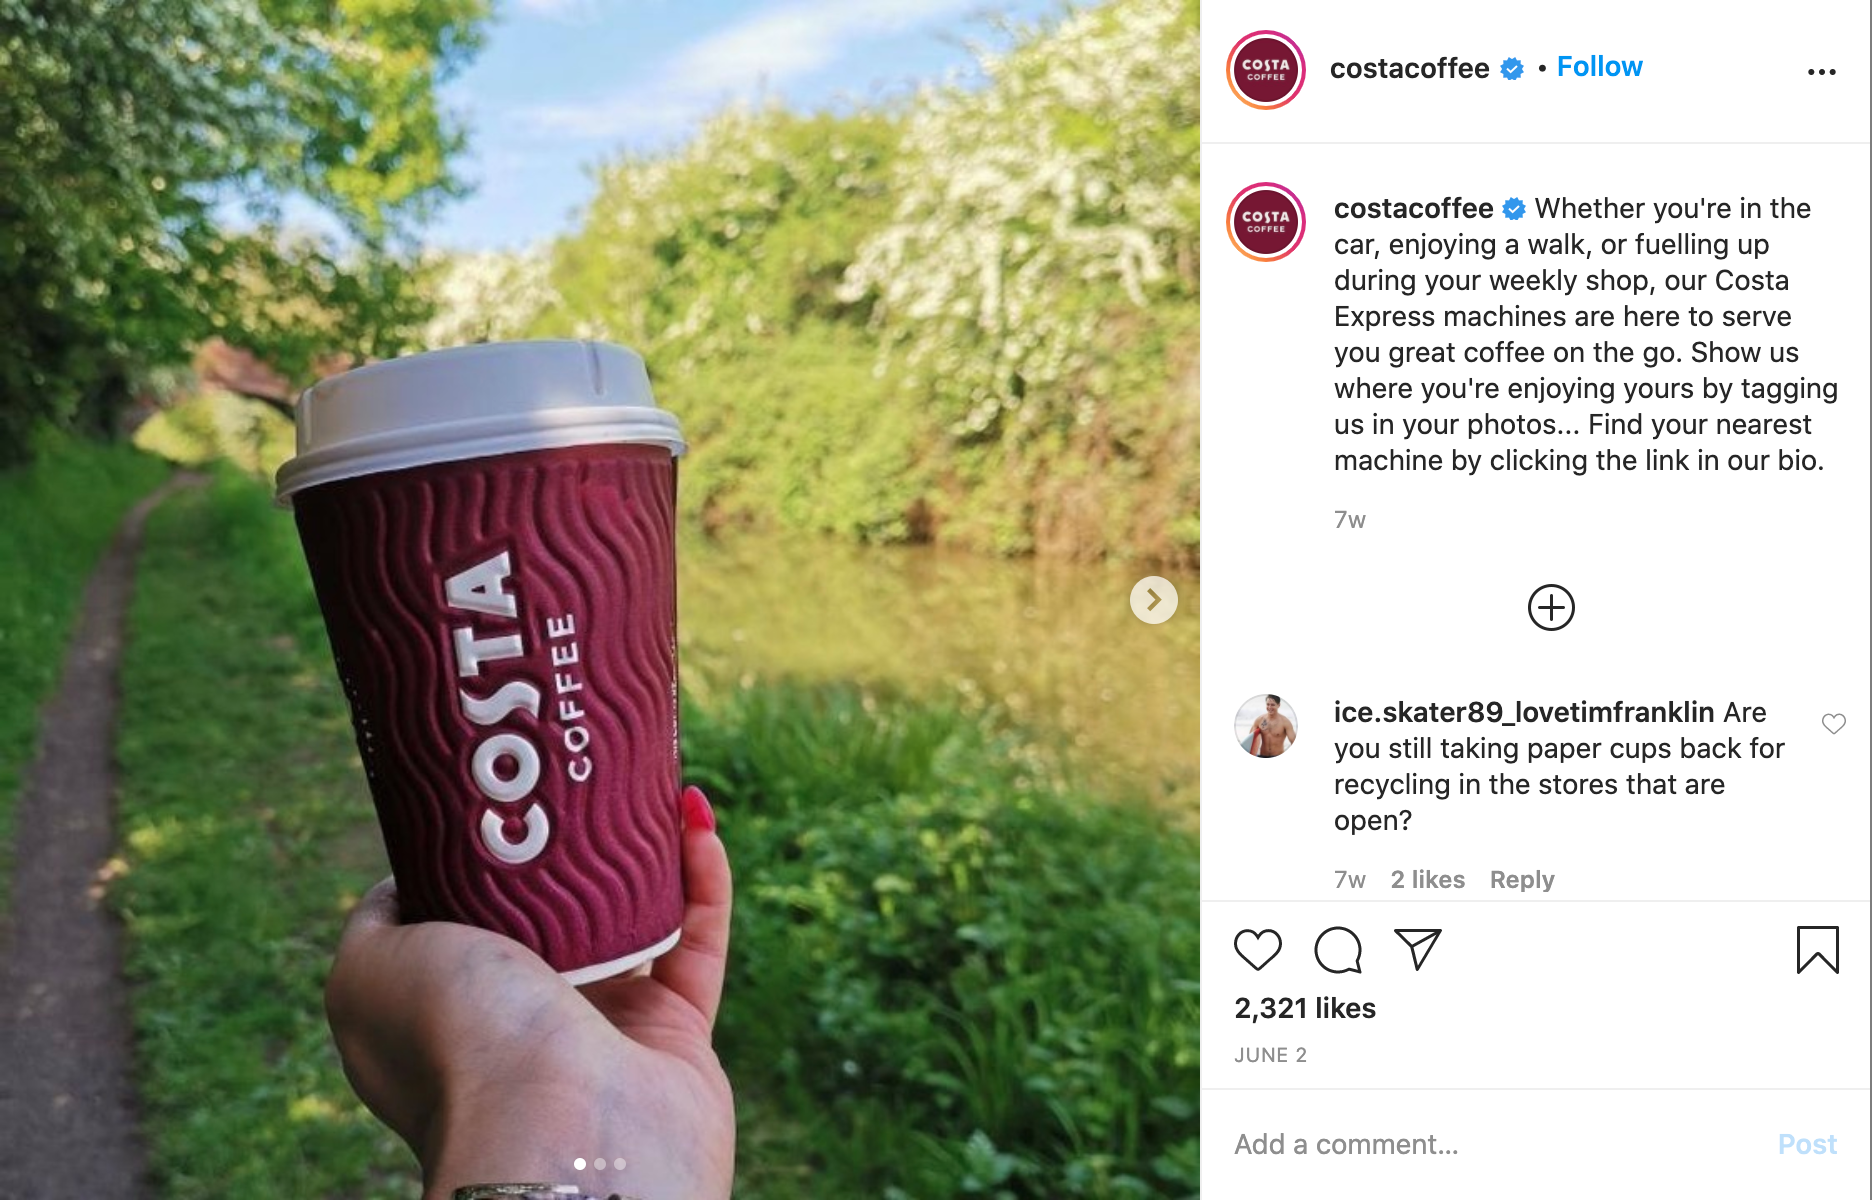 ugc-costacoffee